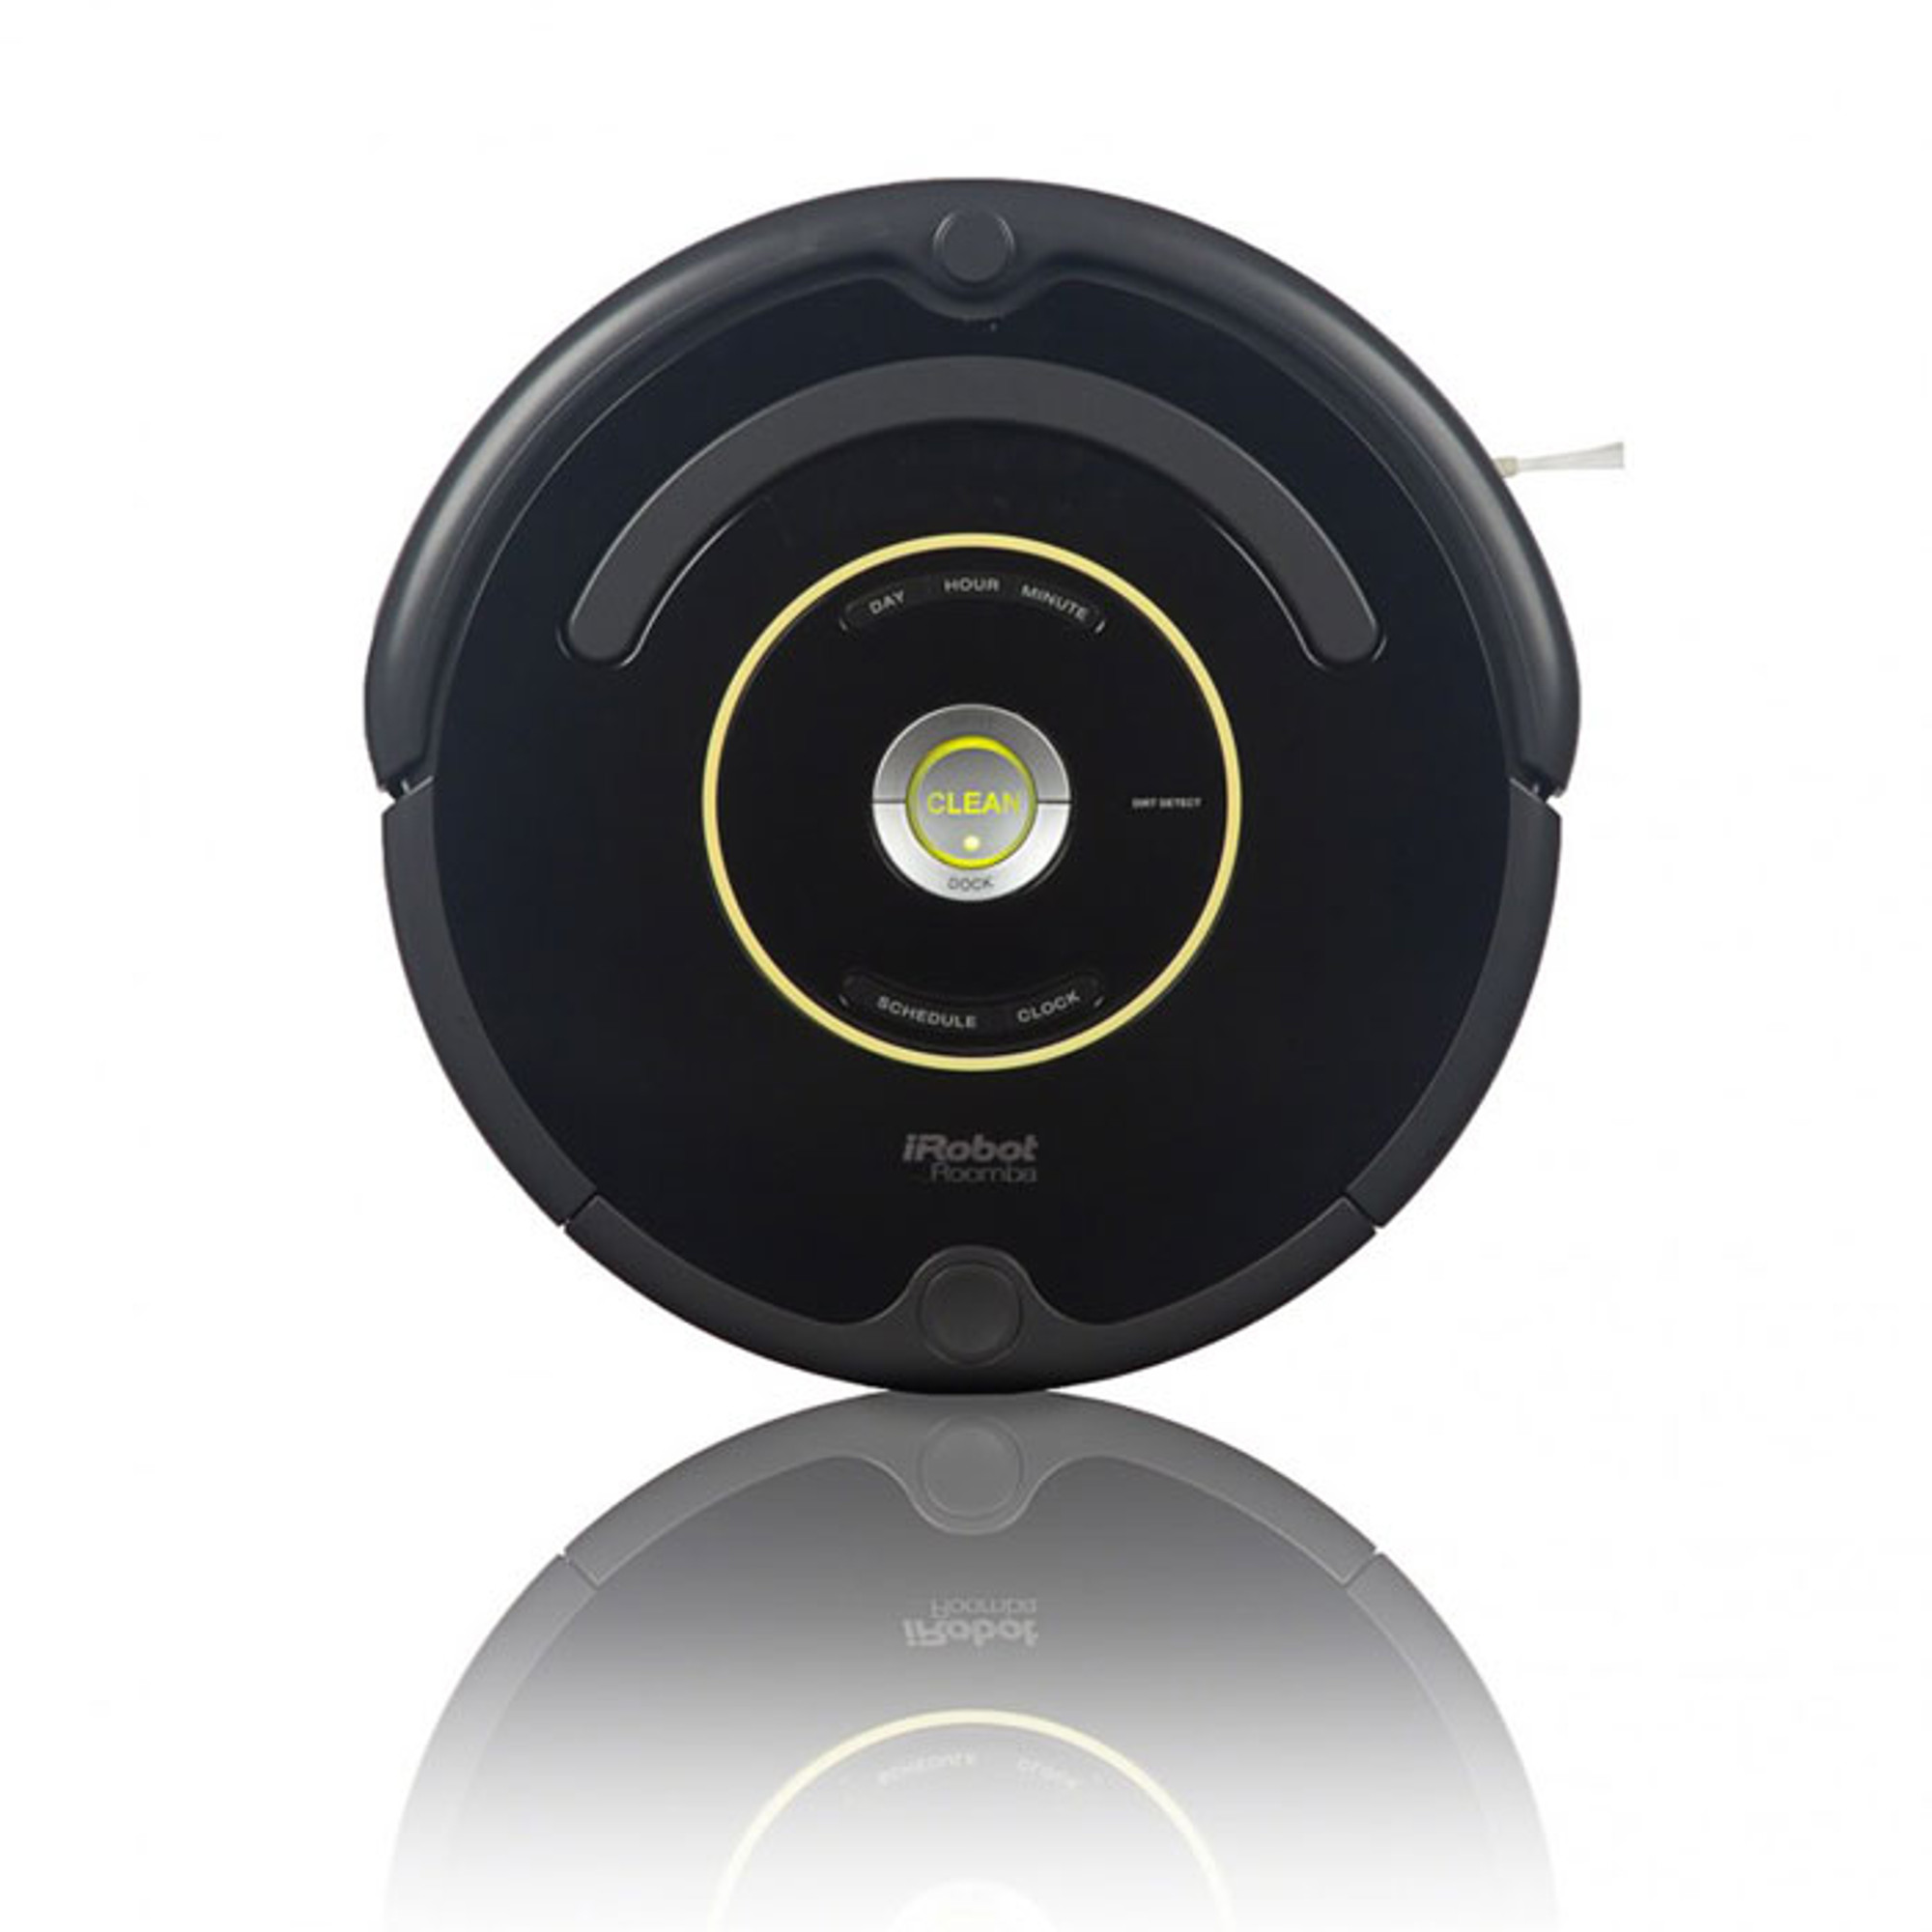 Shoppers Roomba